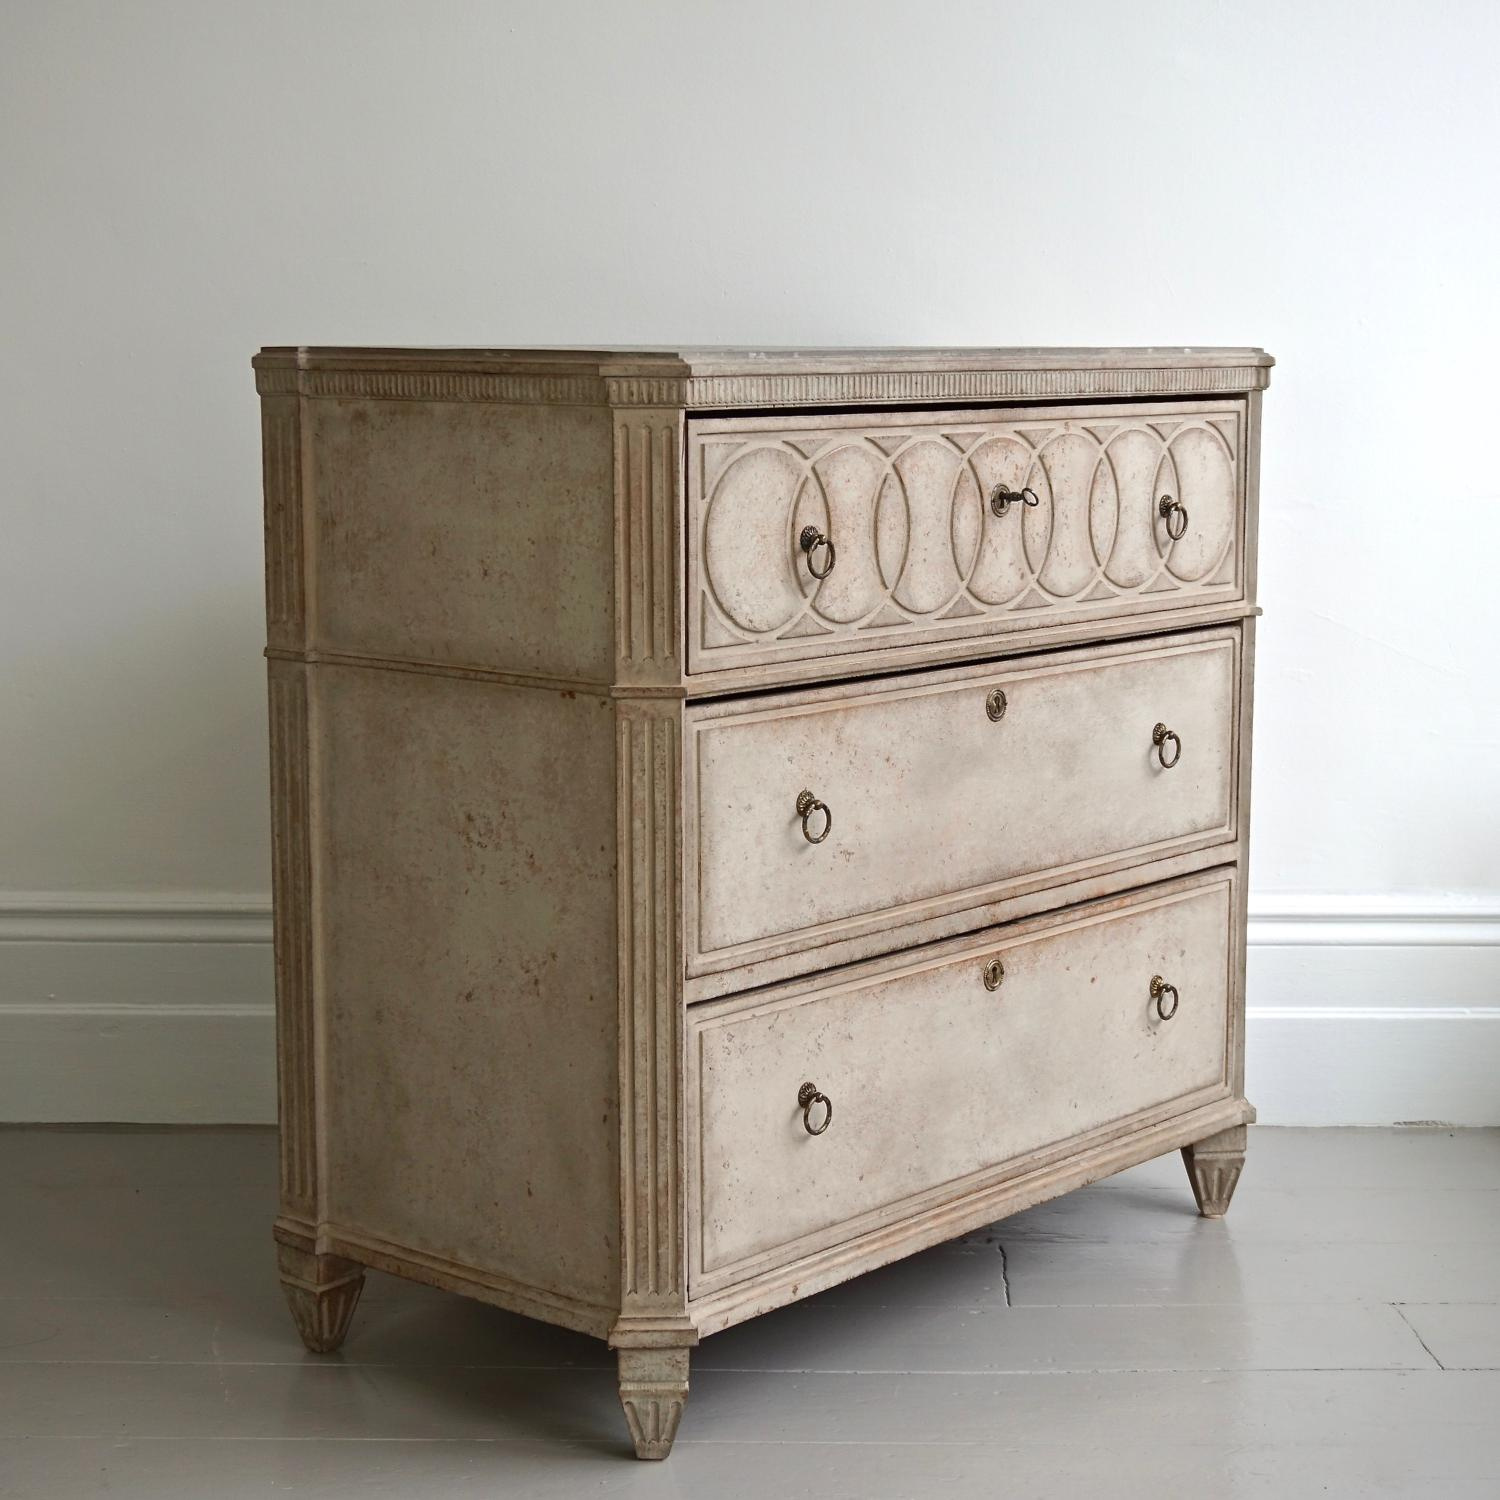 VERY FINE SWEDISH GUSTAVIAN STYLE CHEST